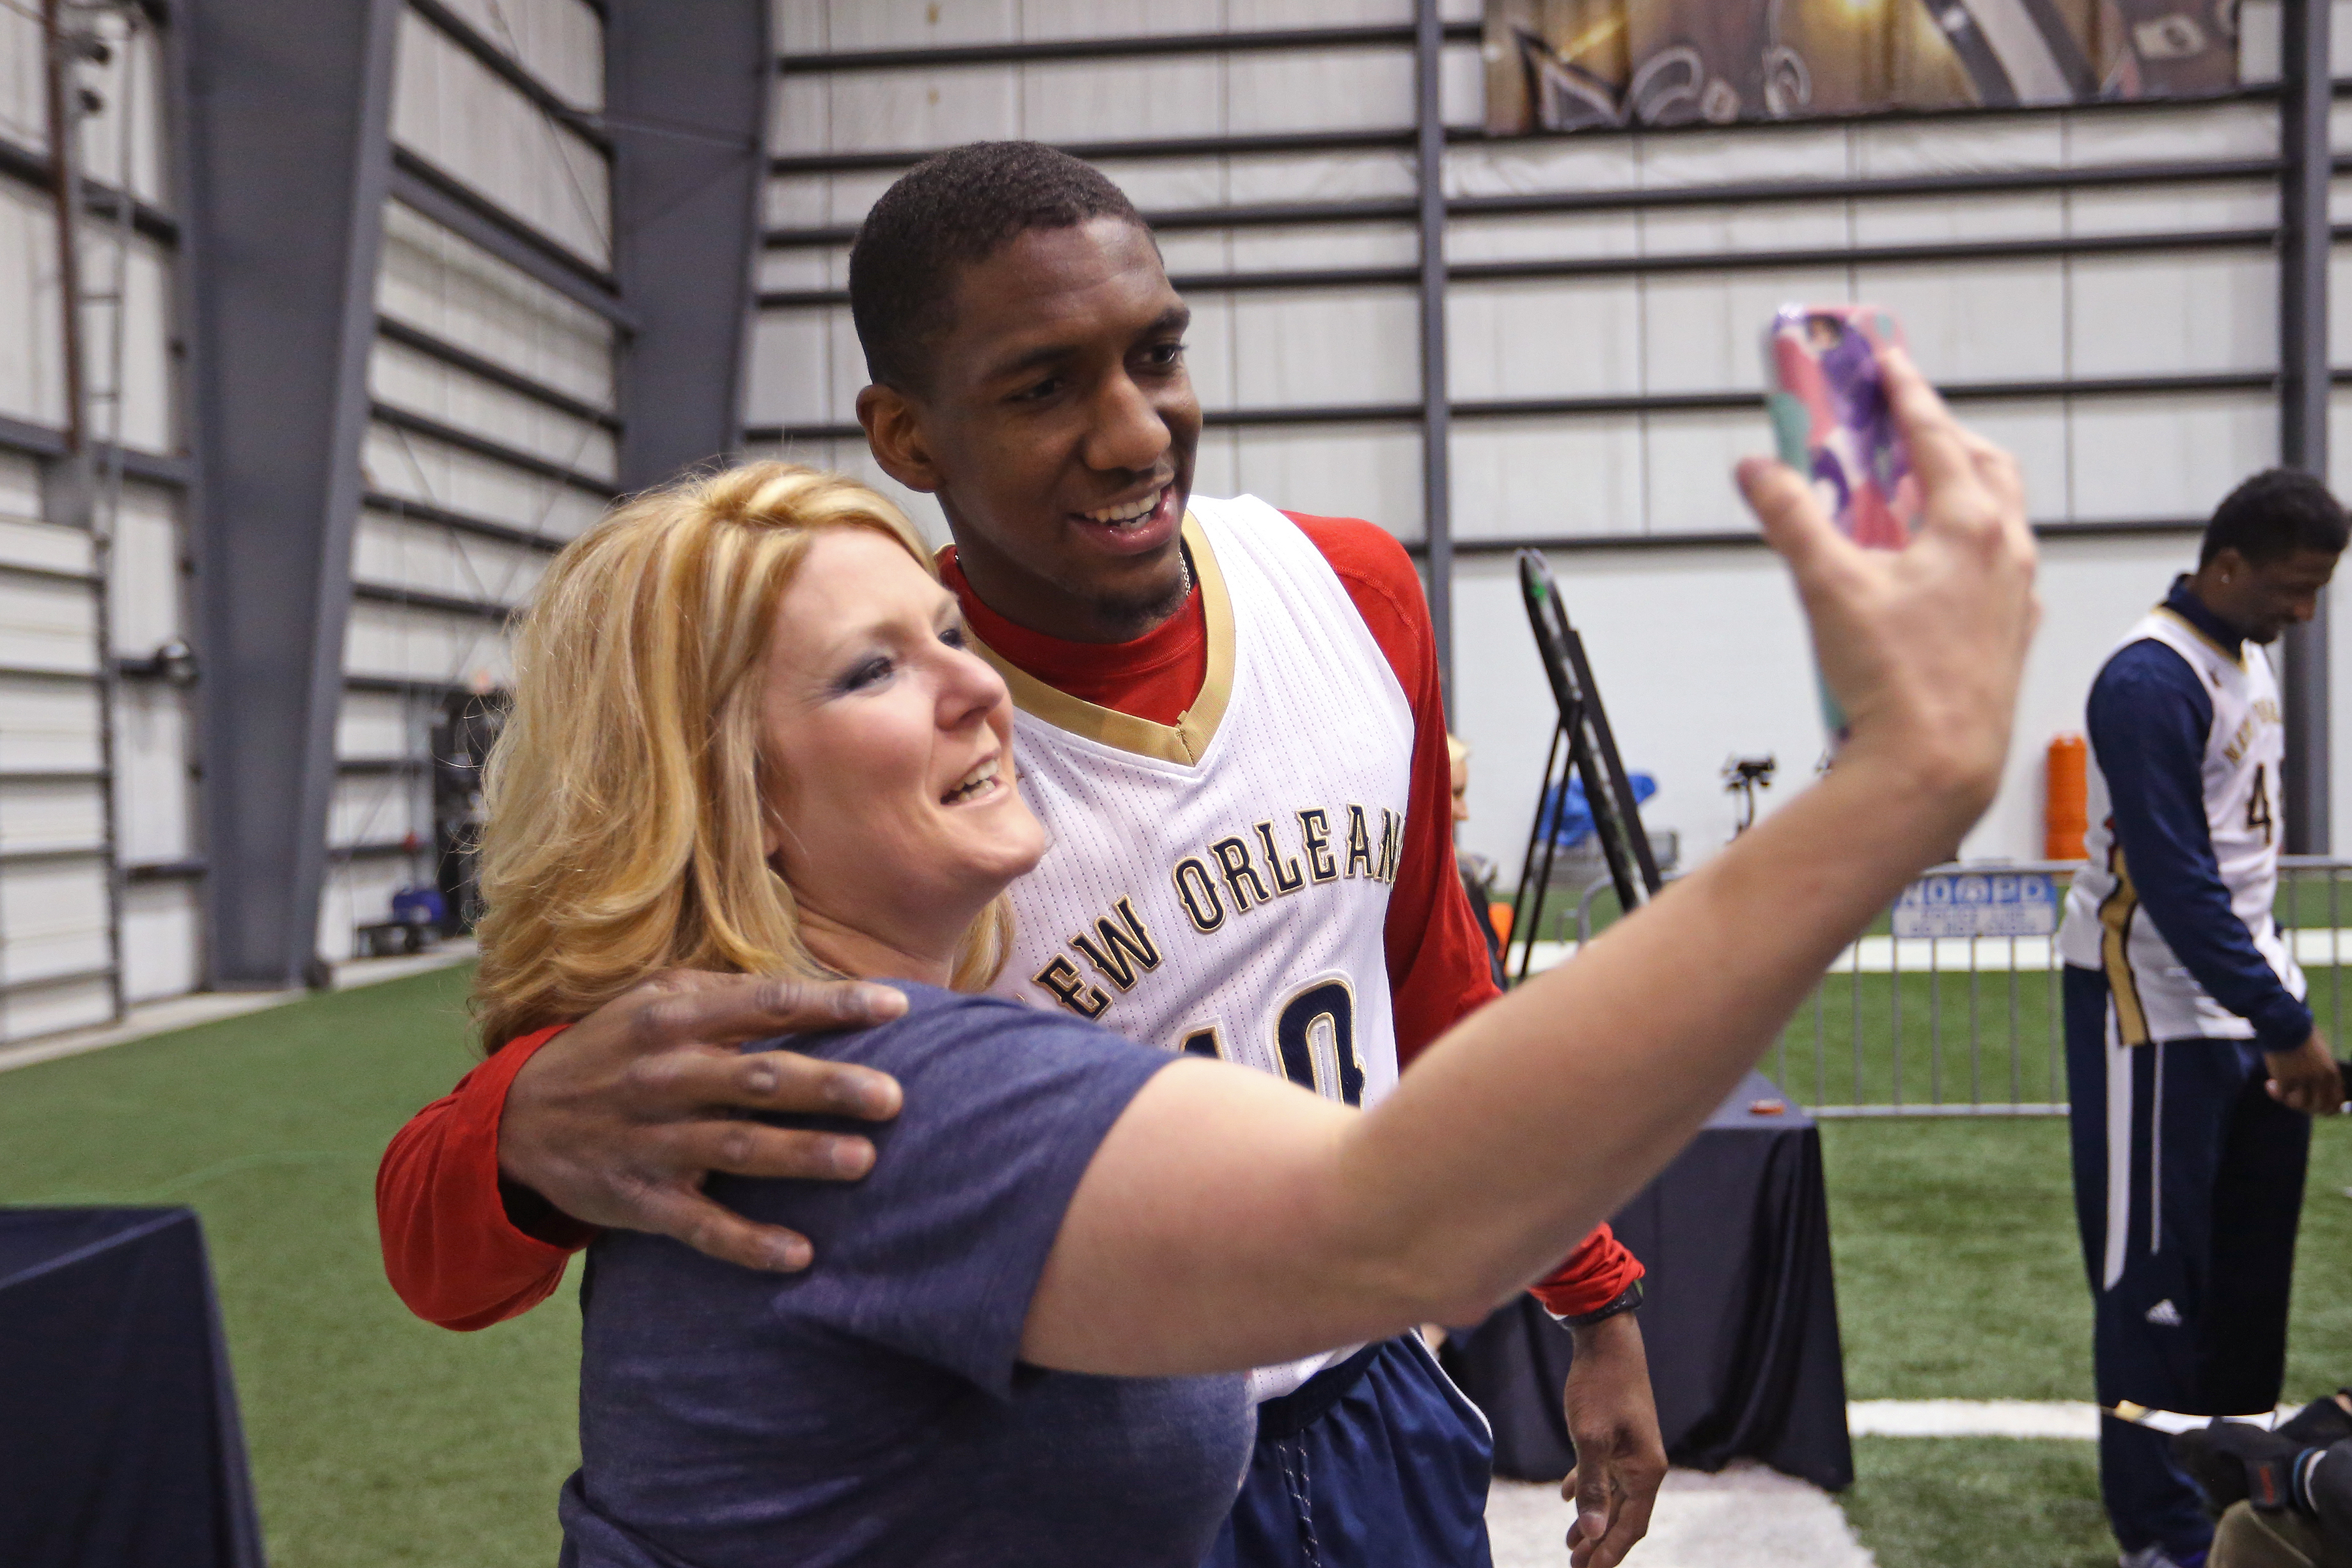 Langston Galloway #10 of the New Orleans Pelicans takes a selfie with fans as the Pelicans hold their annual season tickets sales event on January 28, 2017 at New Orleans Saints/Pelicans Practice Facility in New Orleans, Louisiana.